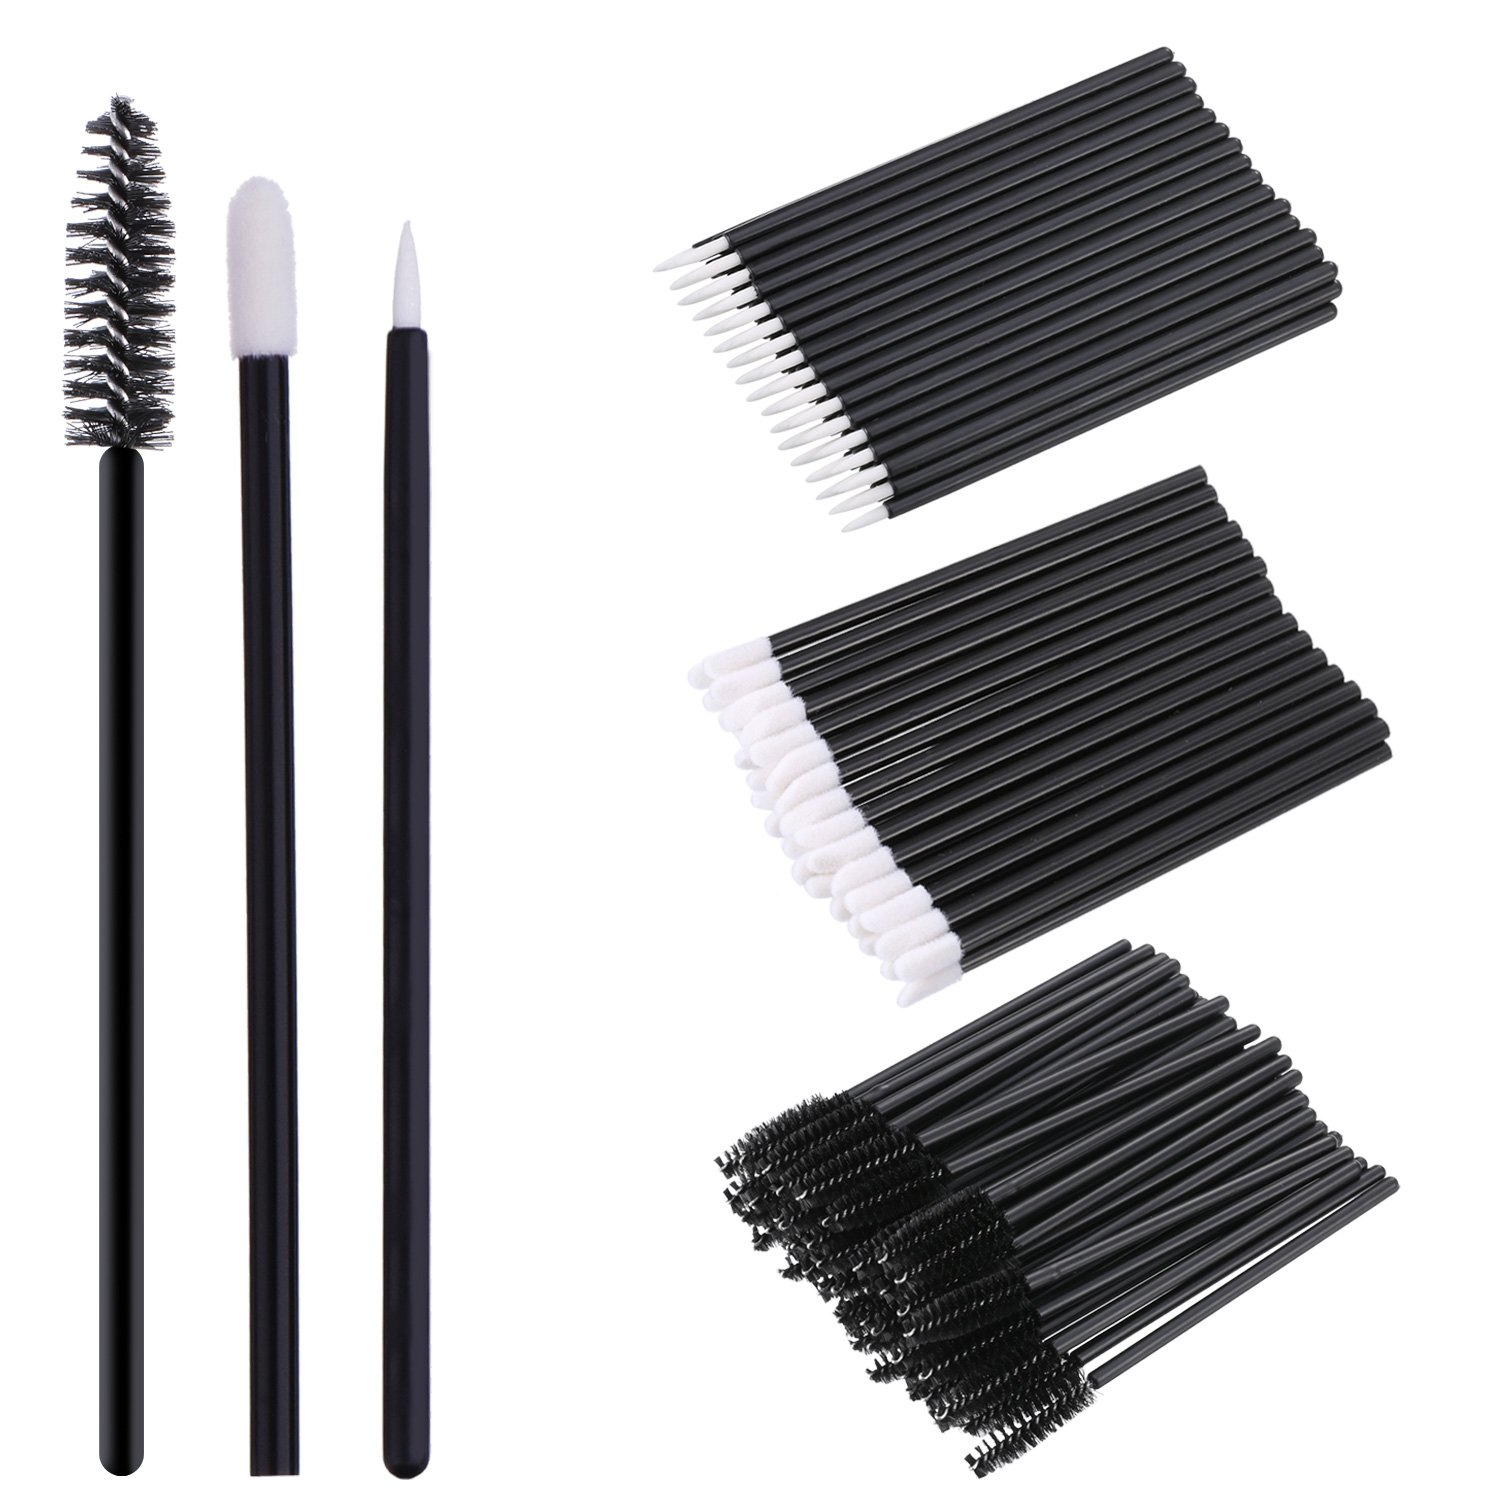 eBoot 150 Pieces Disposable Lip Brushes Nippon regular agency Lipstick Applicato Gloss Sale price